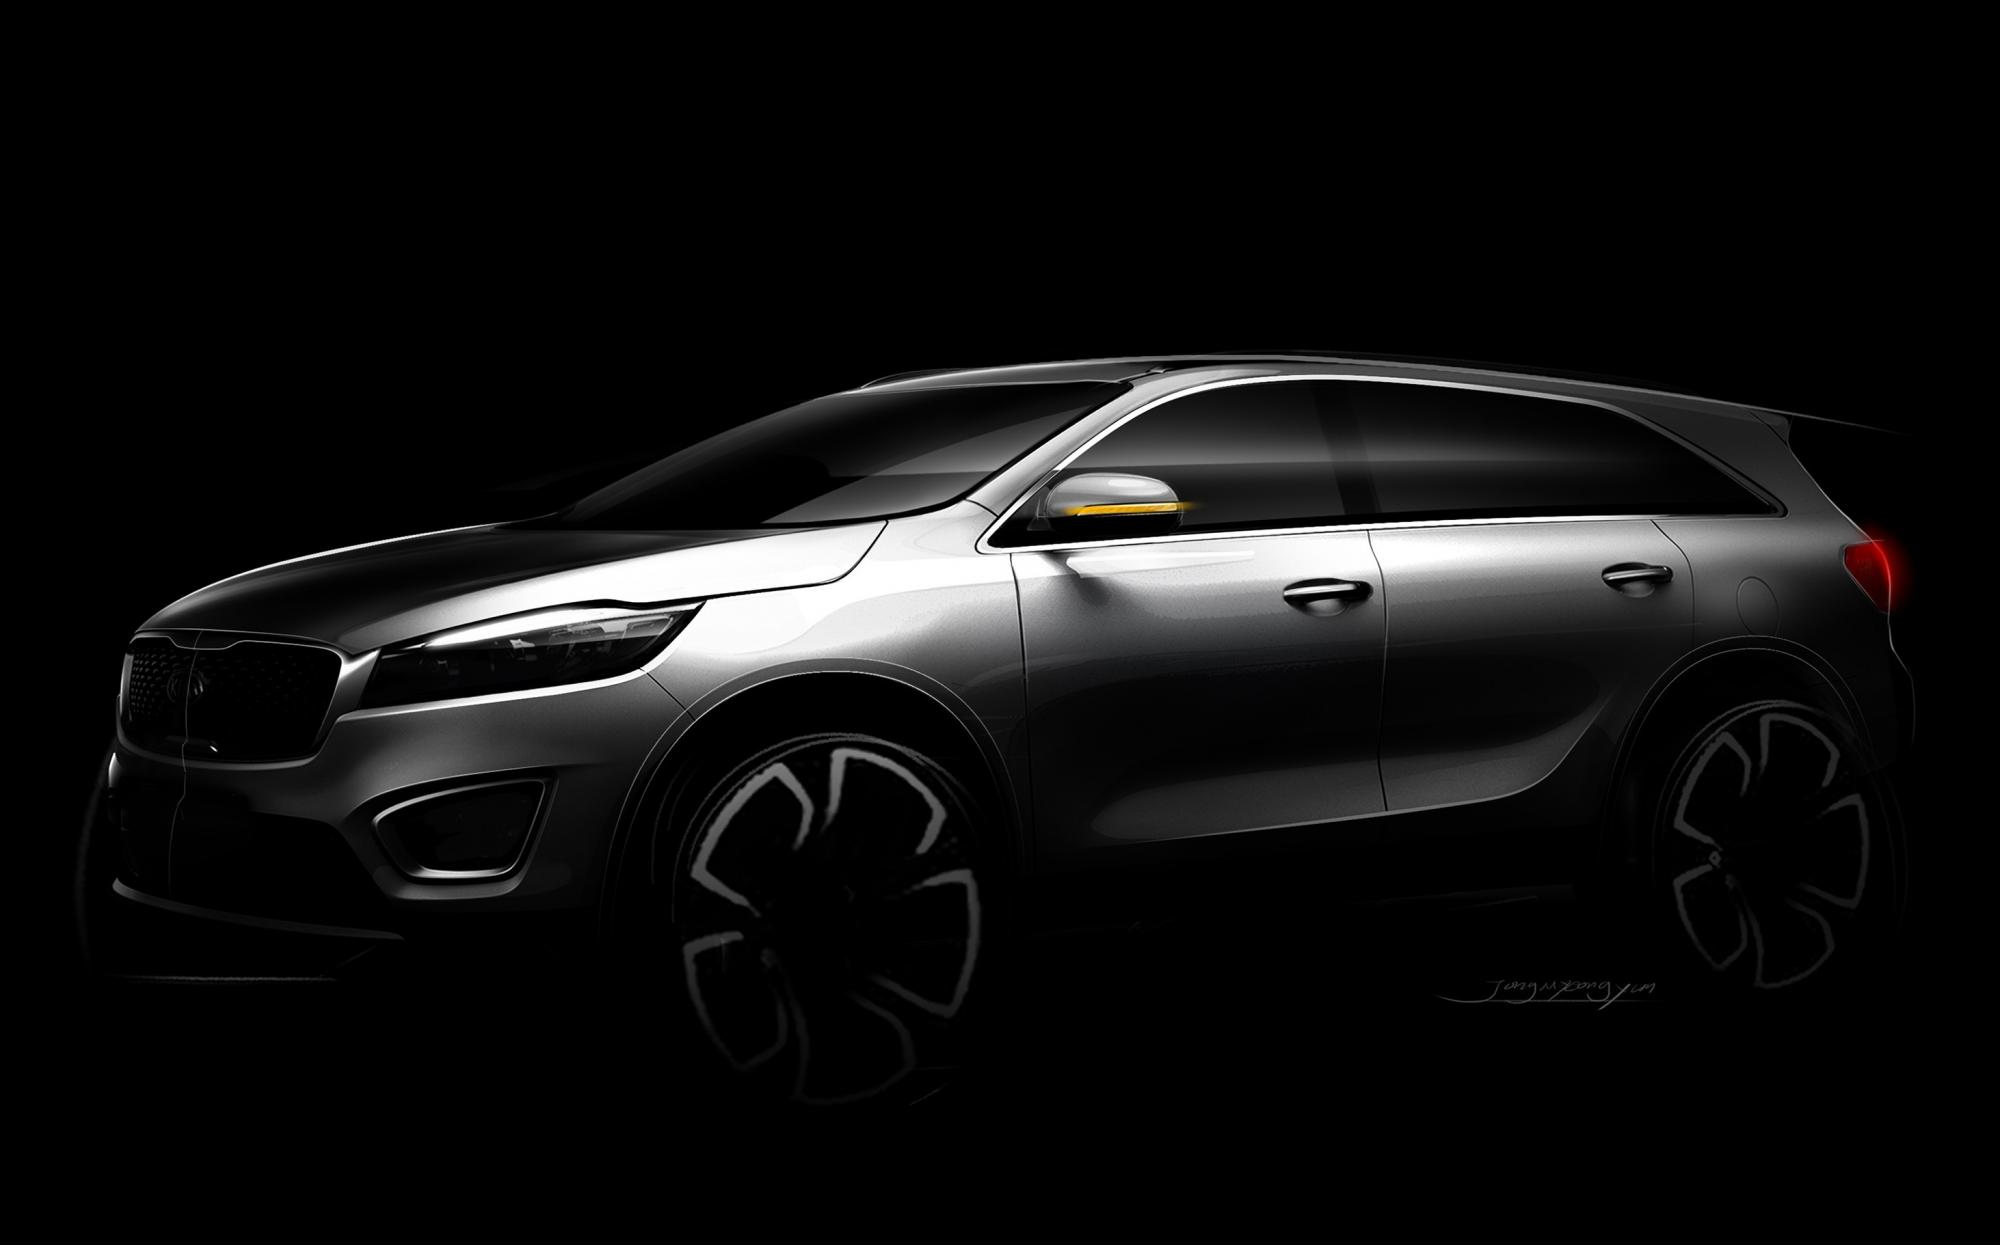 Next Generation Kia Carnival to Make its World Debut in April 9